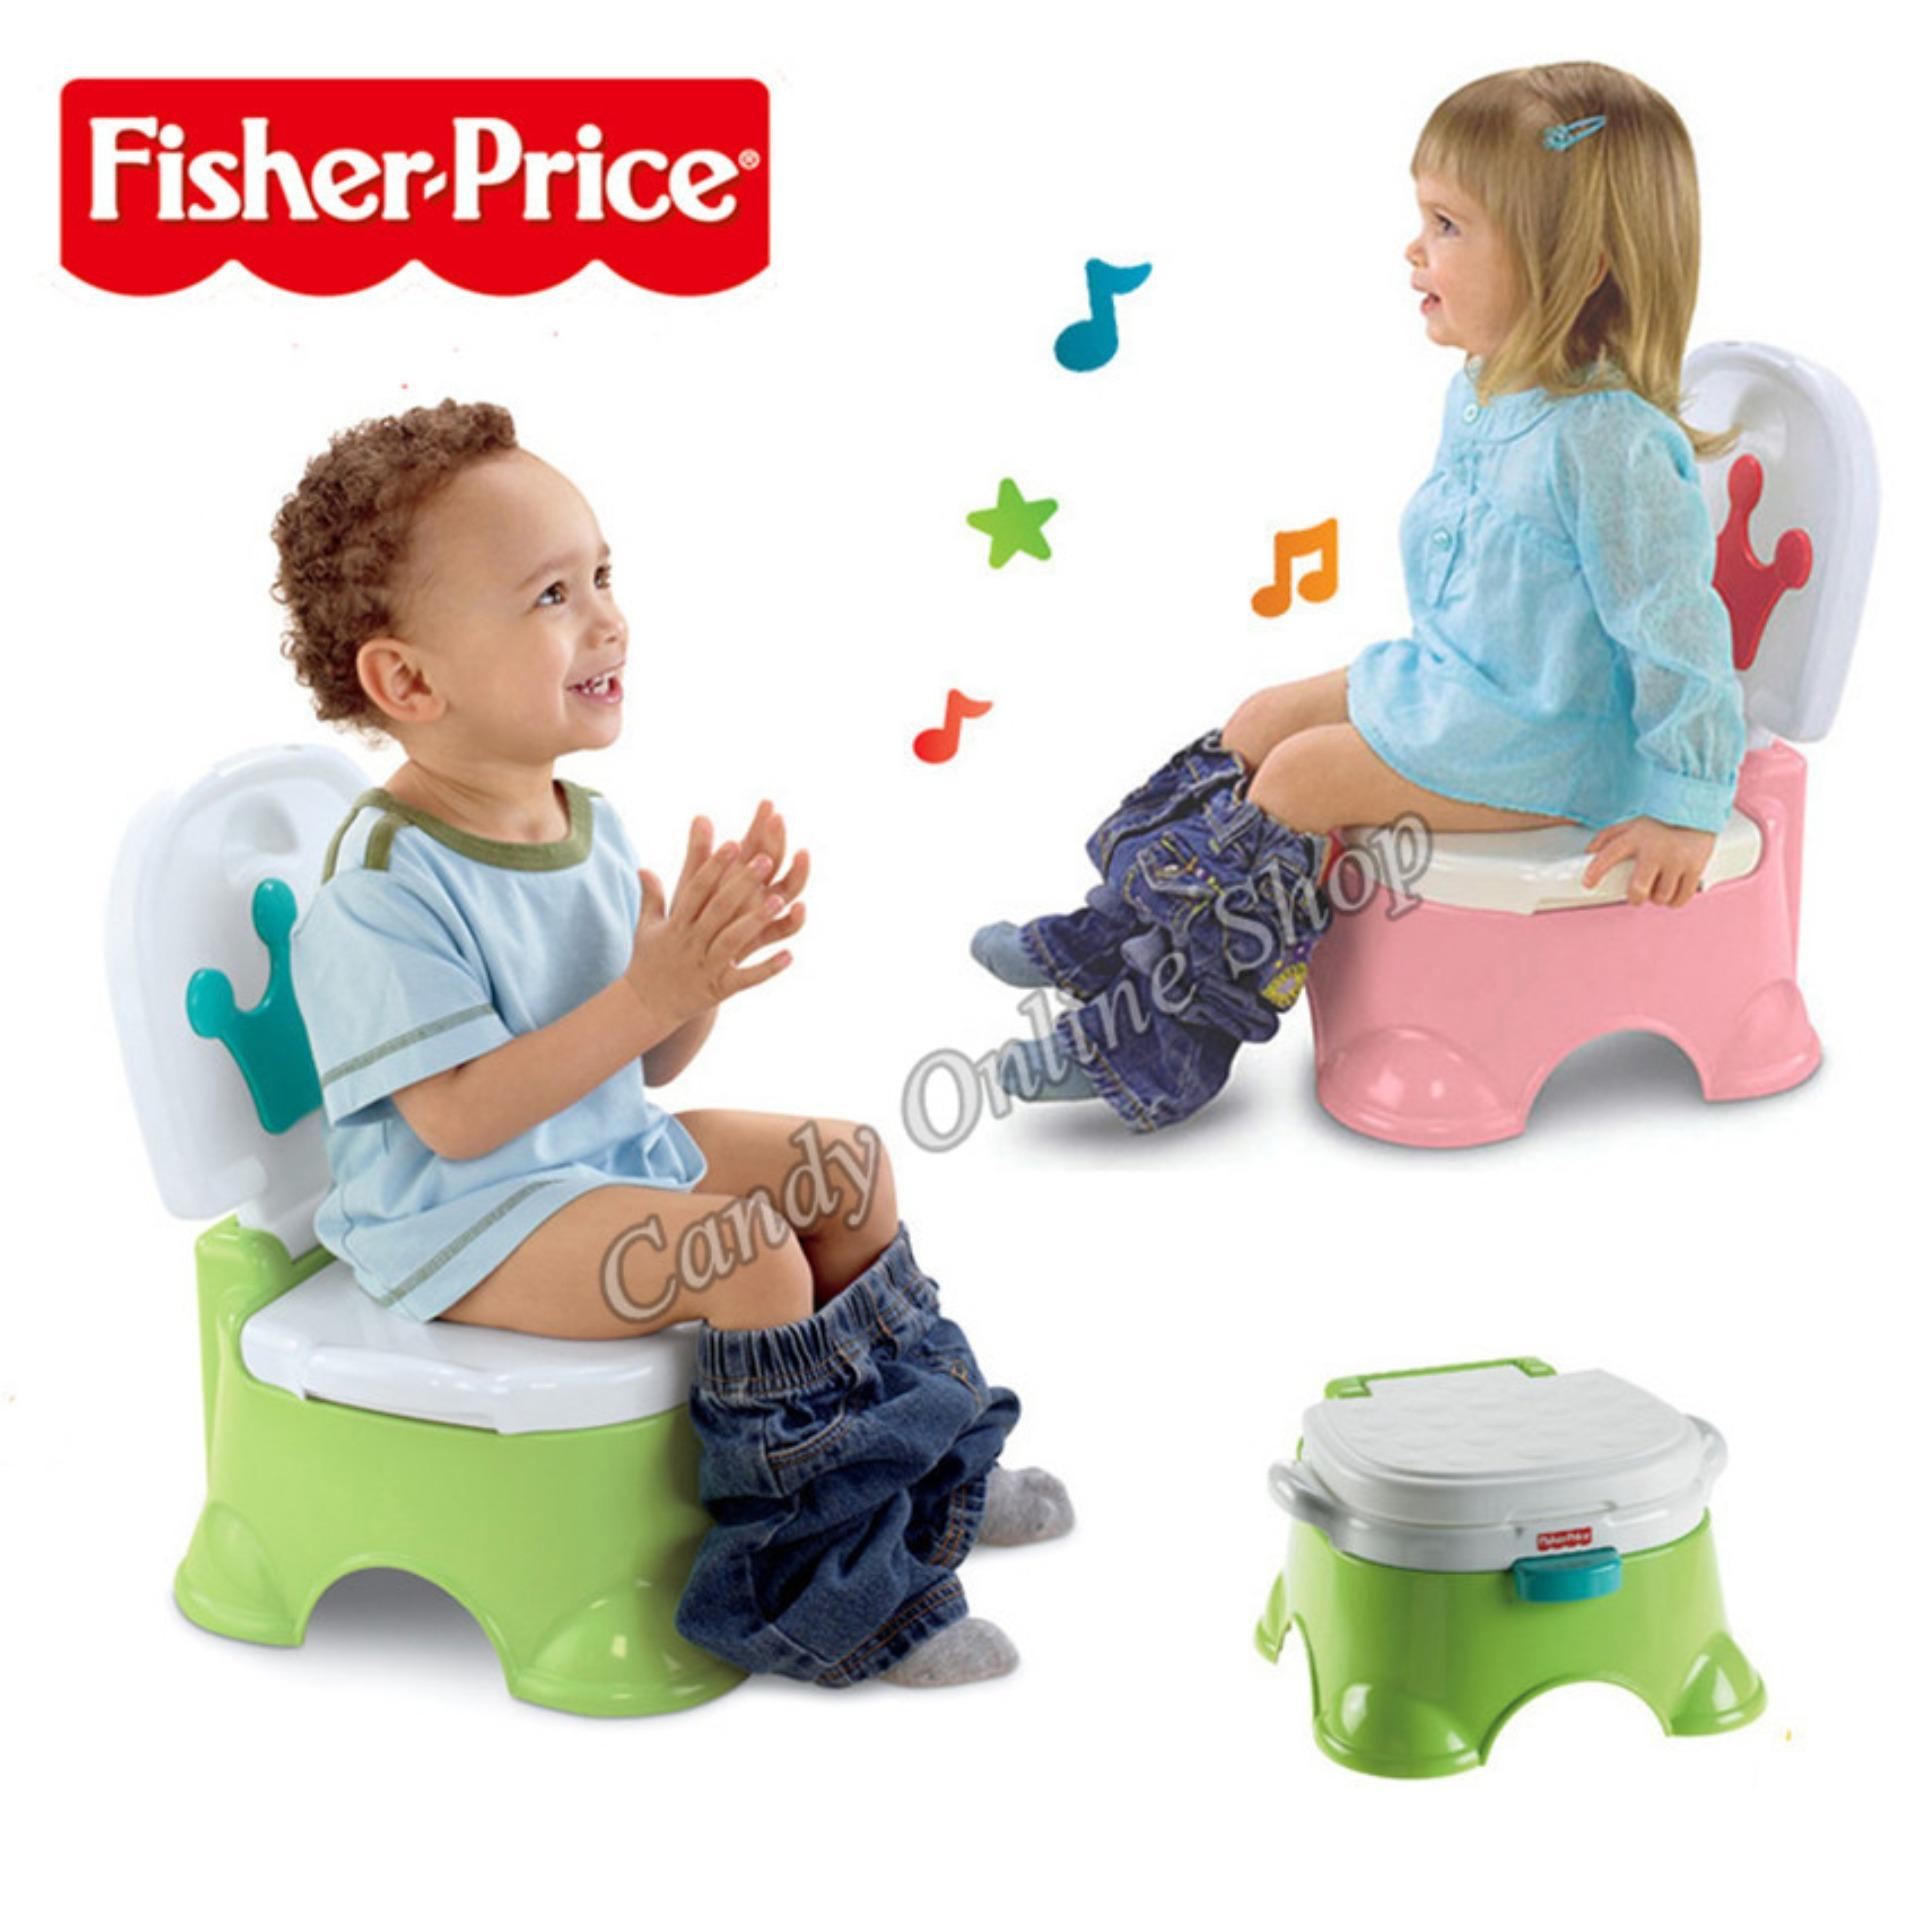 Candy Online Fisher-Price Childrens Potty With Music (pink) By Candy Online Shop.